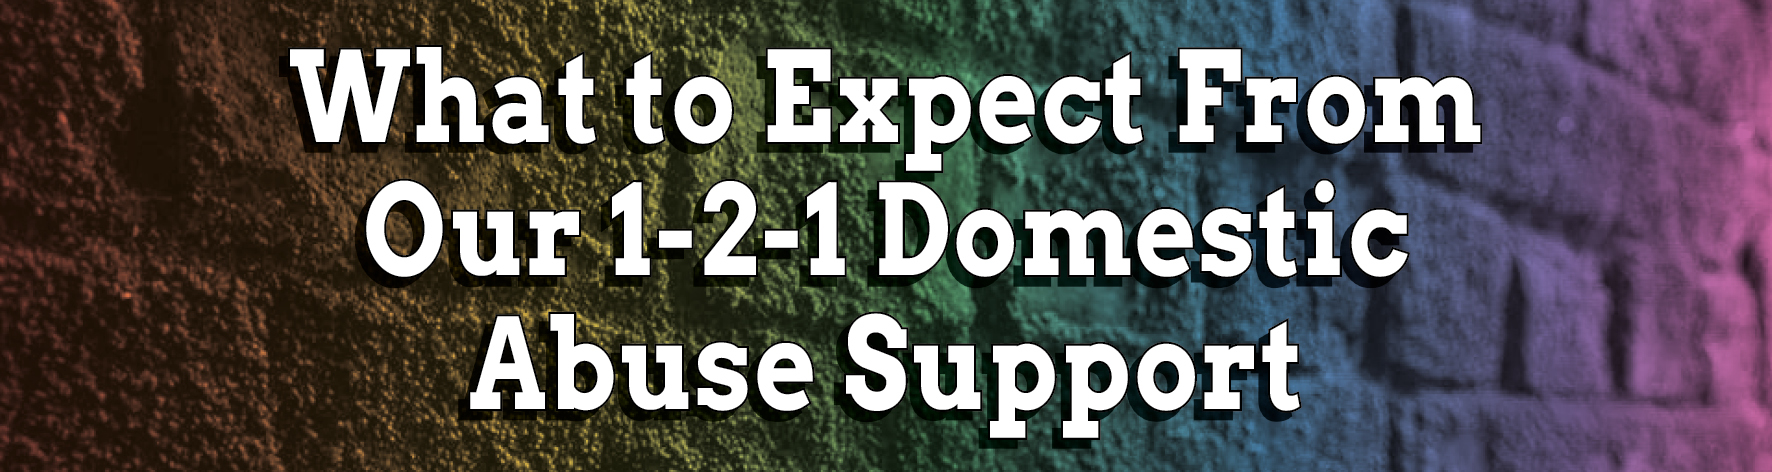 What to Expect from our 1-2-1 Domestic Abuse Support